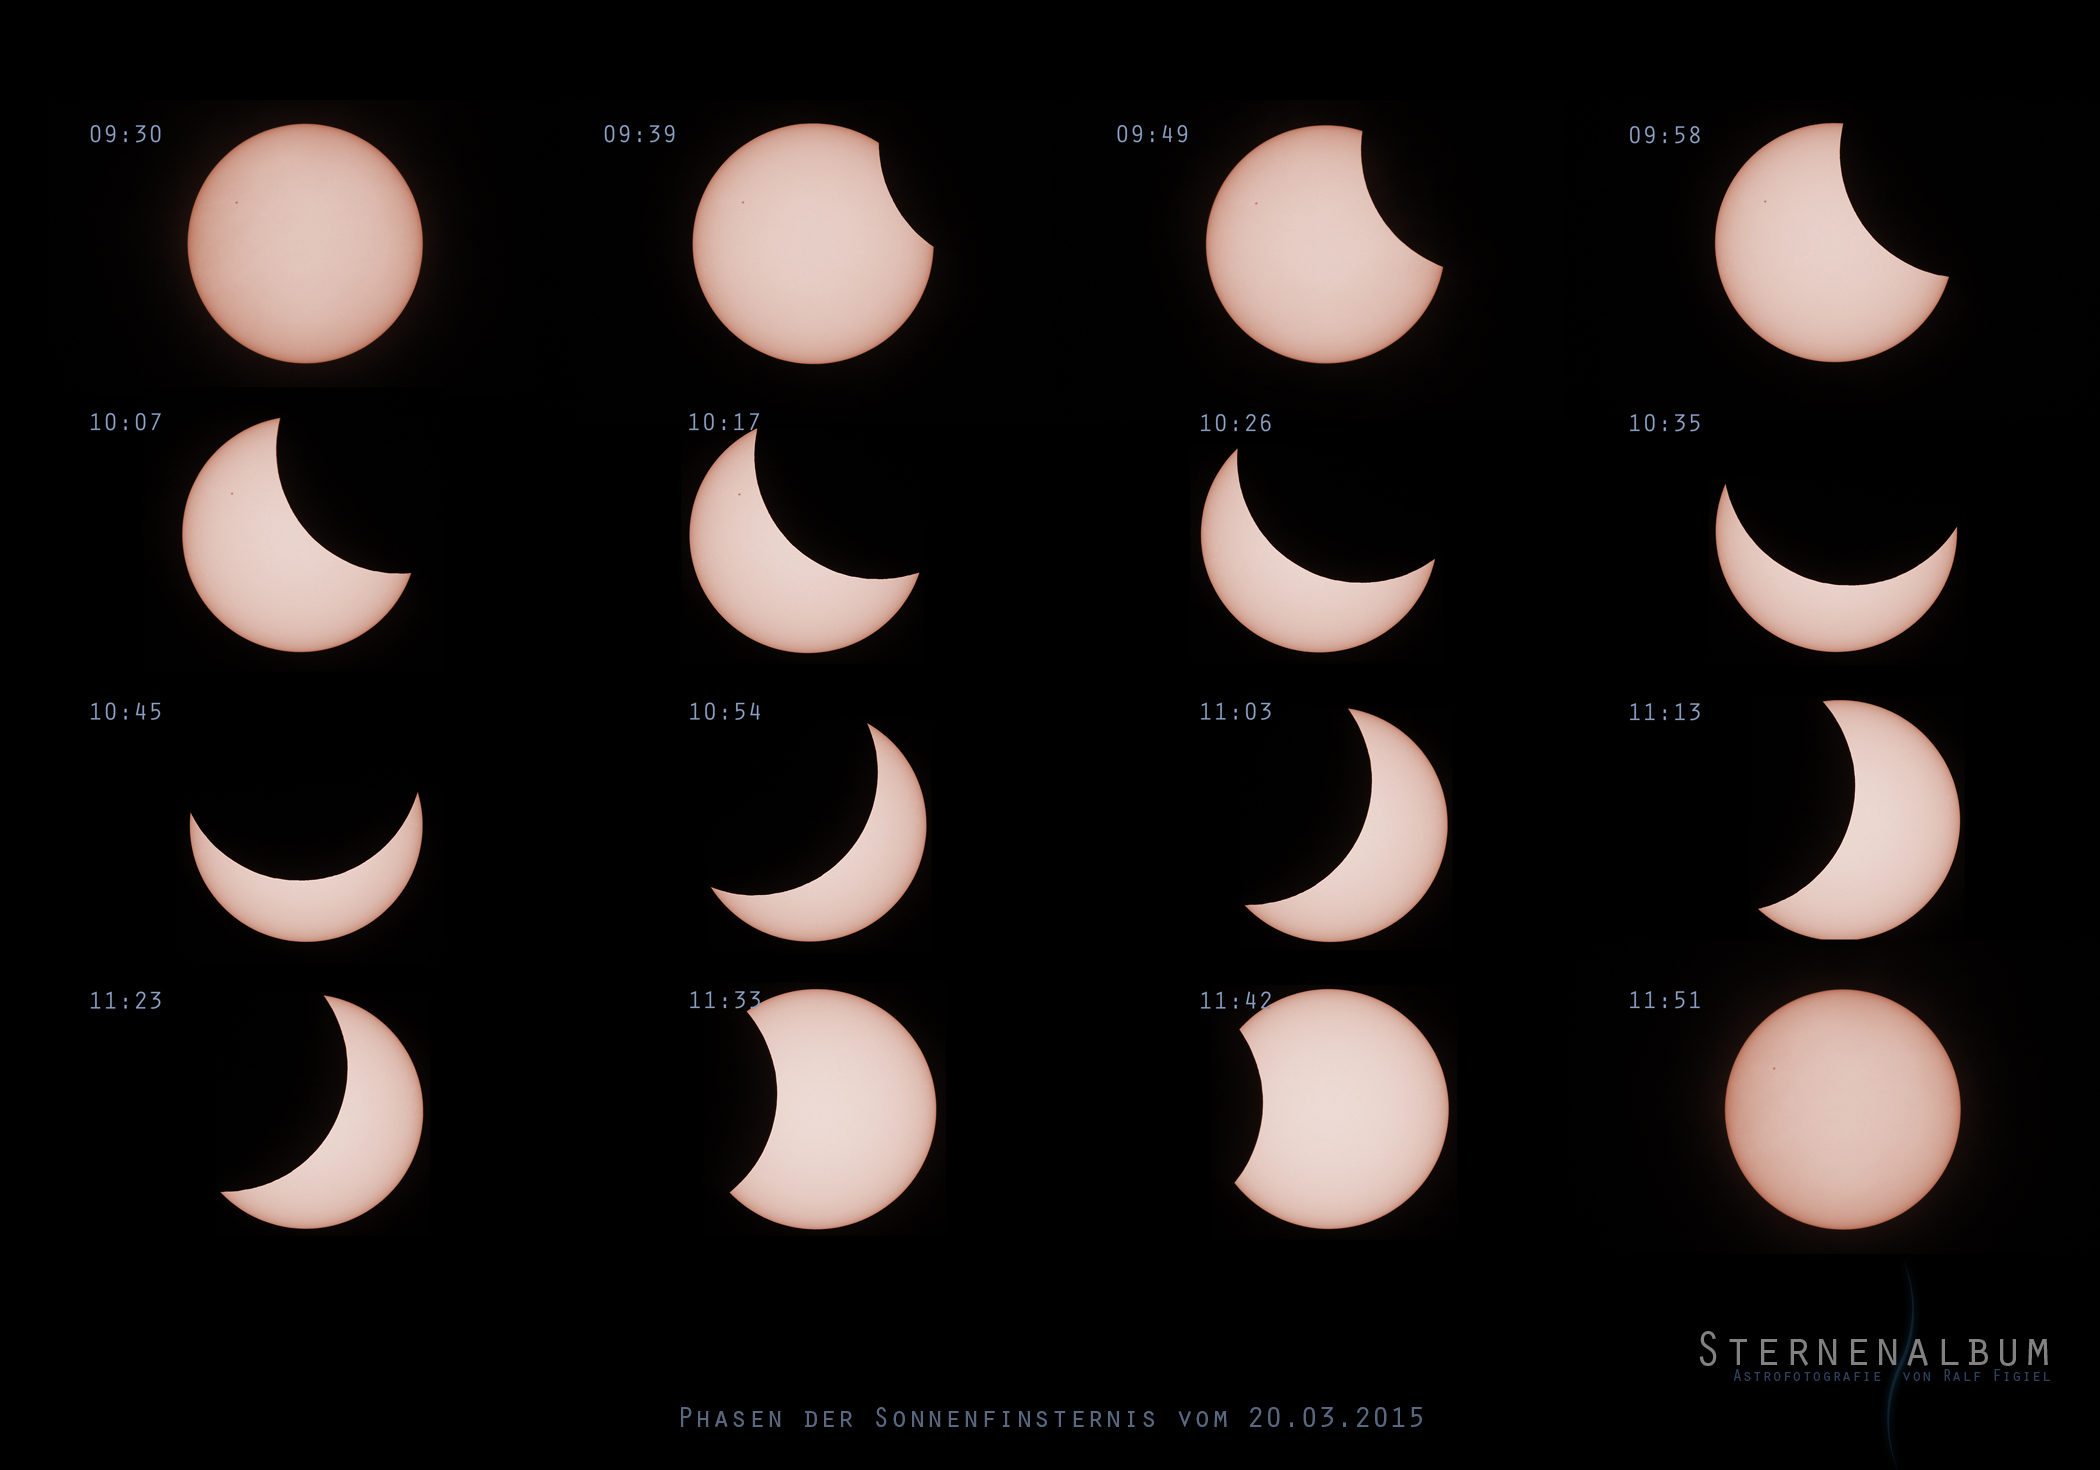 Sonnenfinsternis 2015 Phasen